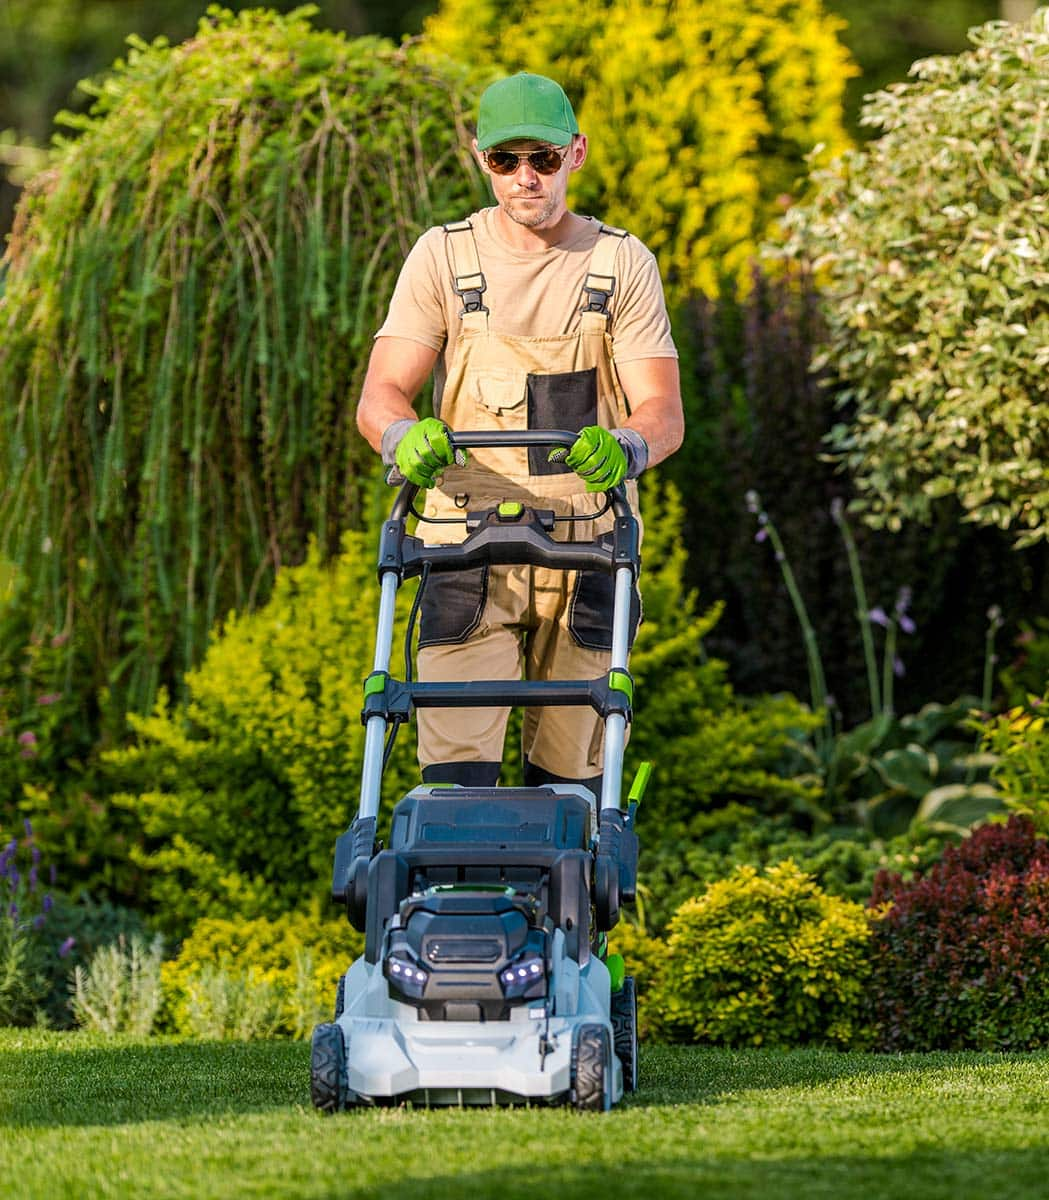 Man Mowing Lawn in Galesburg IL